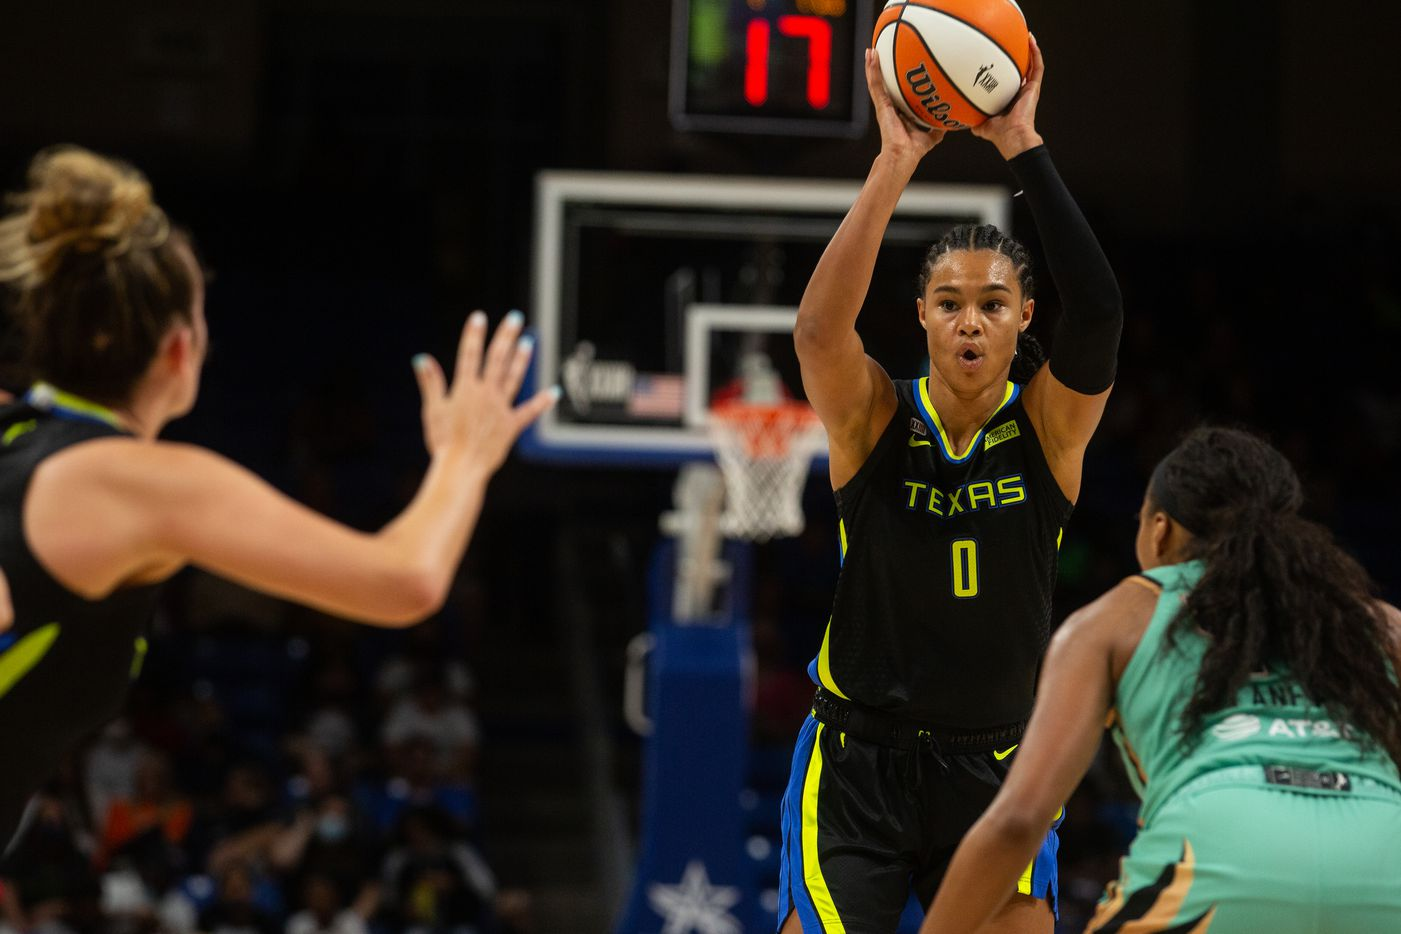 Dallas Wings forward Satou Sabally looks for a pass during their game against New York Liberty at College Park Center in Arlington, TX on September 11, 2021.  (Shelby Tauber/Special Contributor)